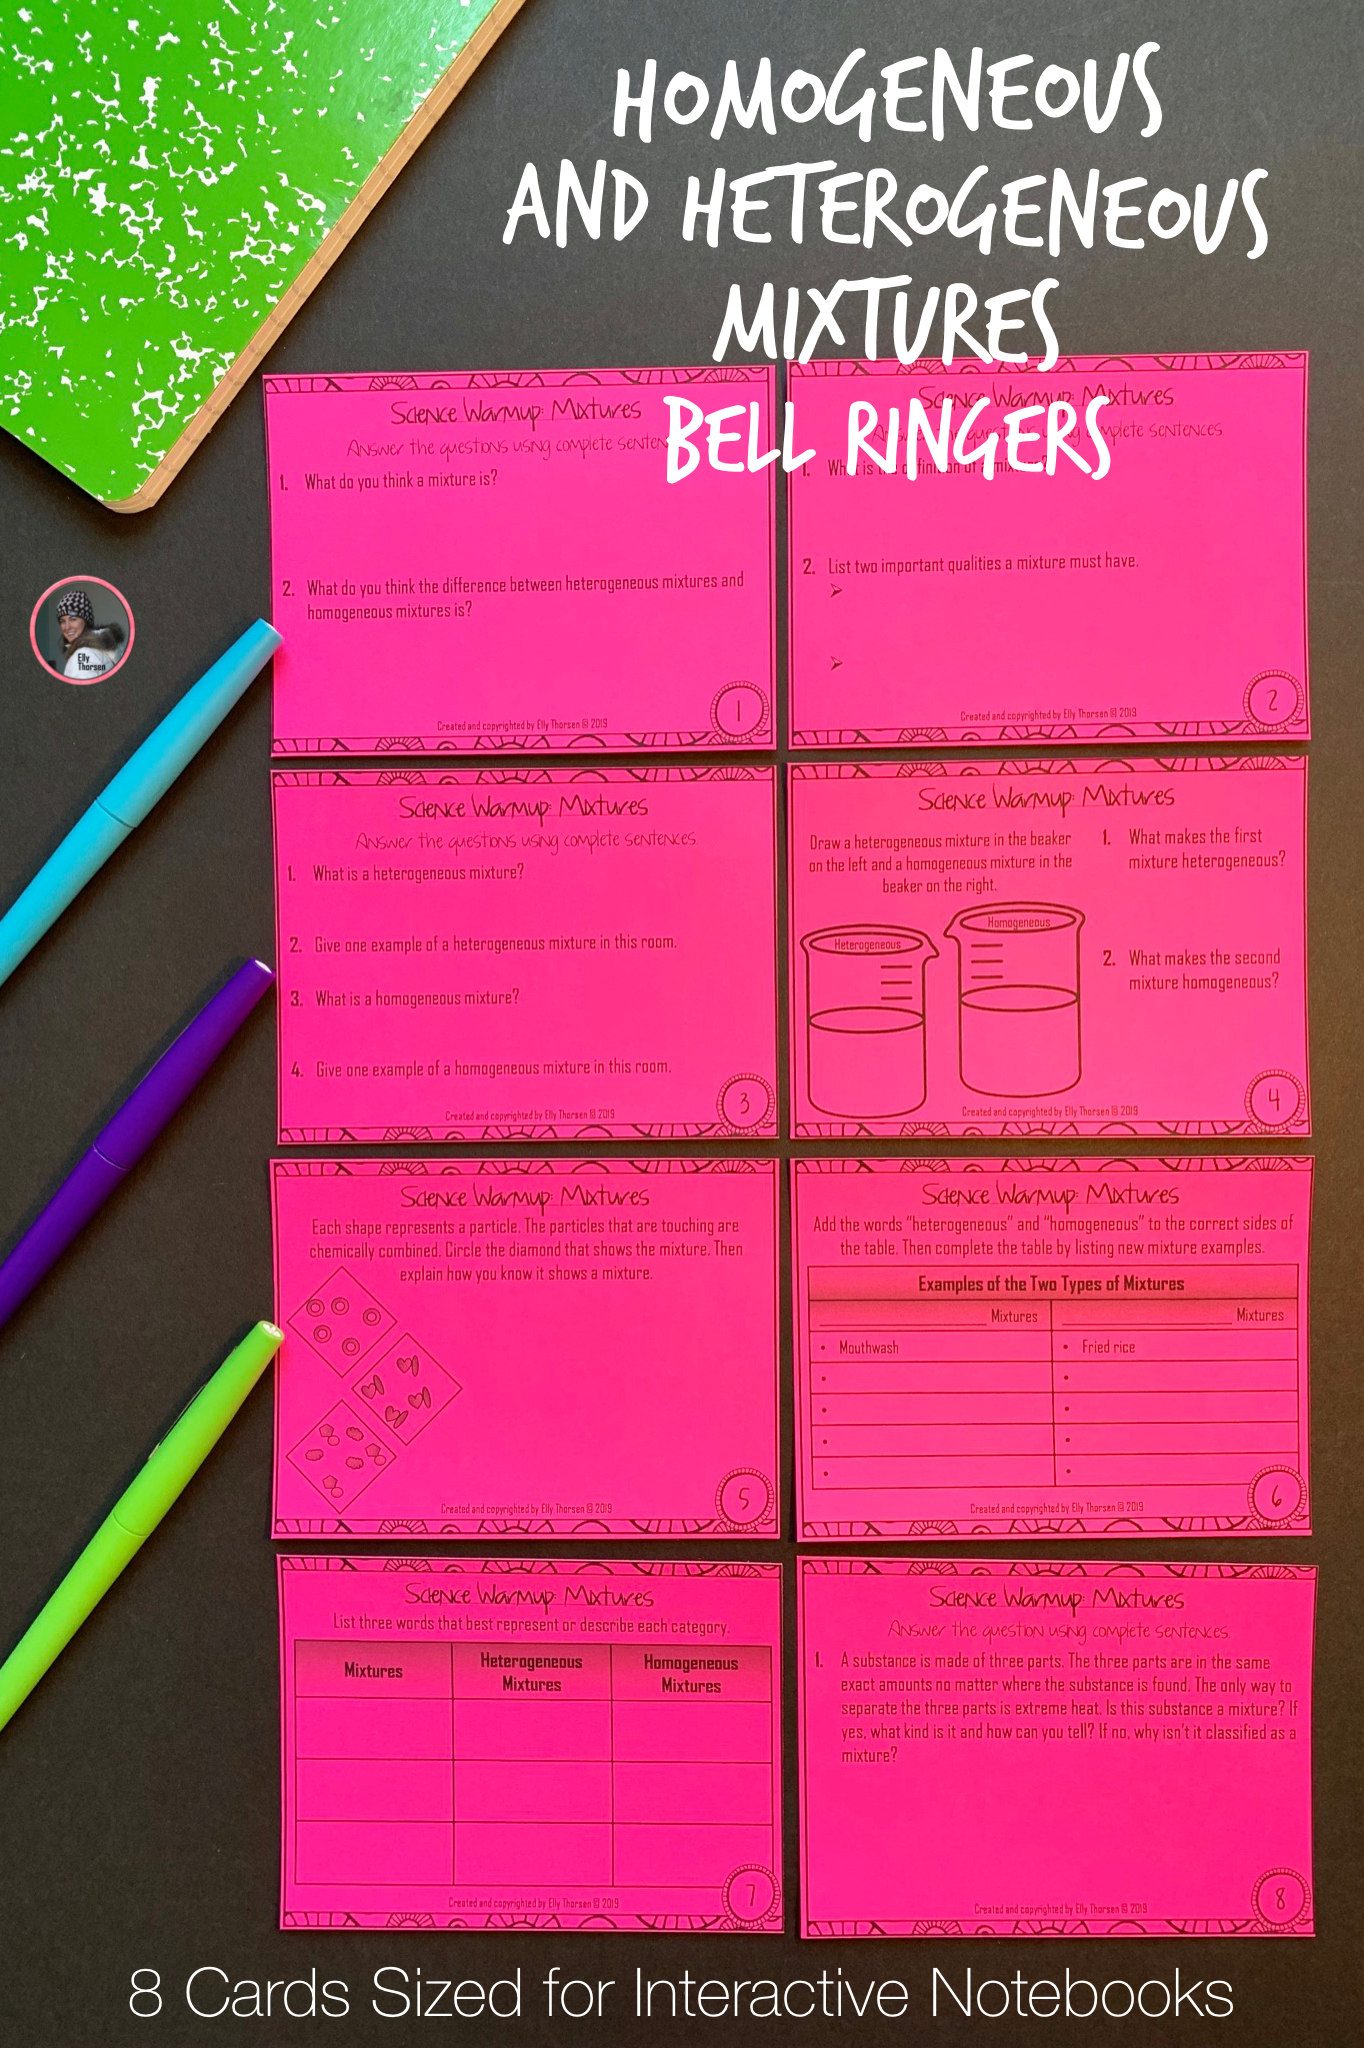 Heterogeneous And Homogeneous Mixtures Bell Ringers For Middle School Scien Middle School Science Middle School Science Resources Interactive Student Notebooks [ 2048 x 1364 Pixel ]